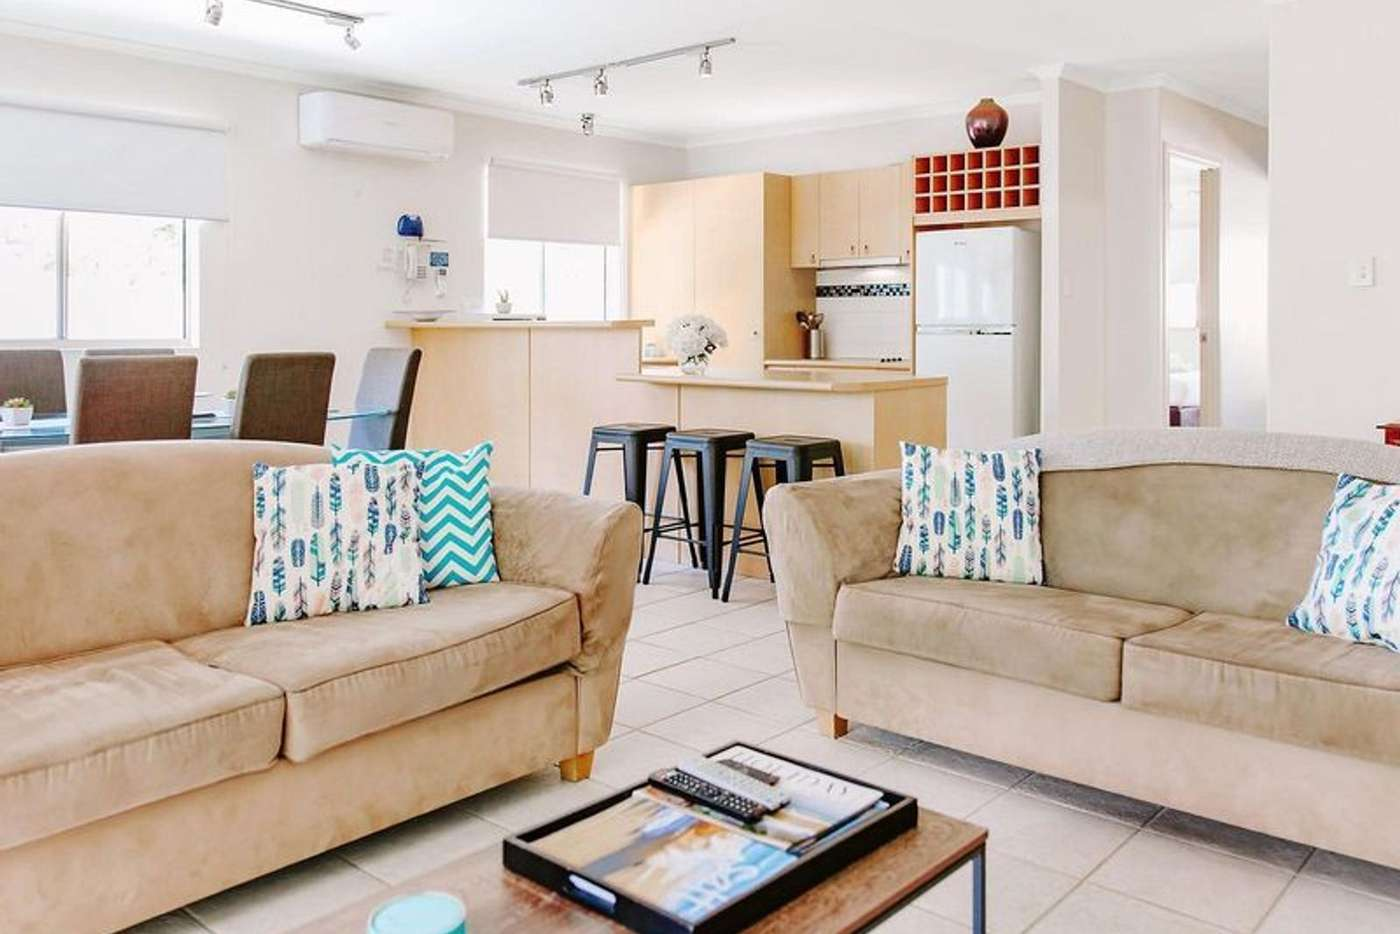 Main view of Homely unit listing, 20/287 Gympie Terrace, Noosaville QLD 4566